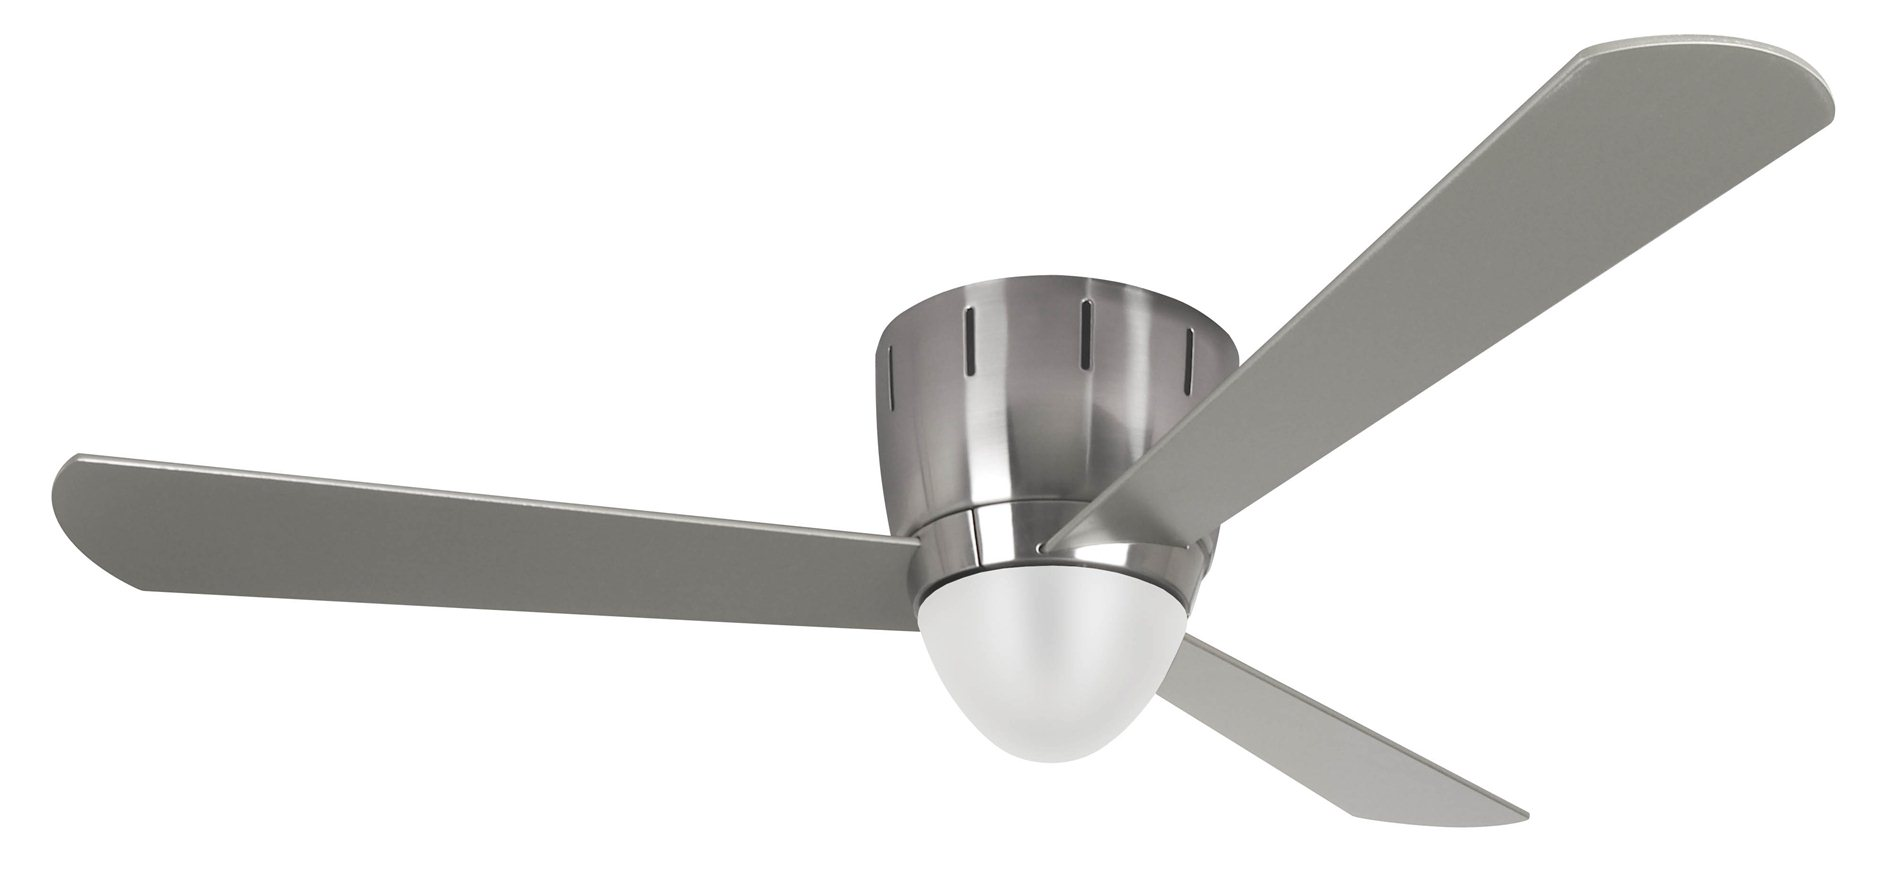 Craftmade eps48bc3lk1rc ellipse 48 contemporary hugger ceiling fan craftmade ellipse 48 contemporary hugger ceiling fan el eps48bc3lk1rci see details aloadofball Choice Image